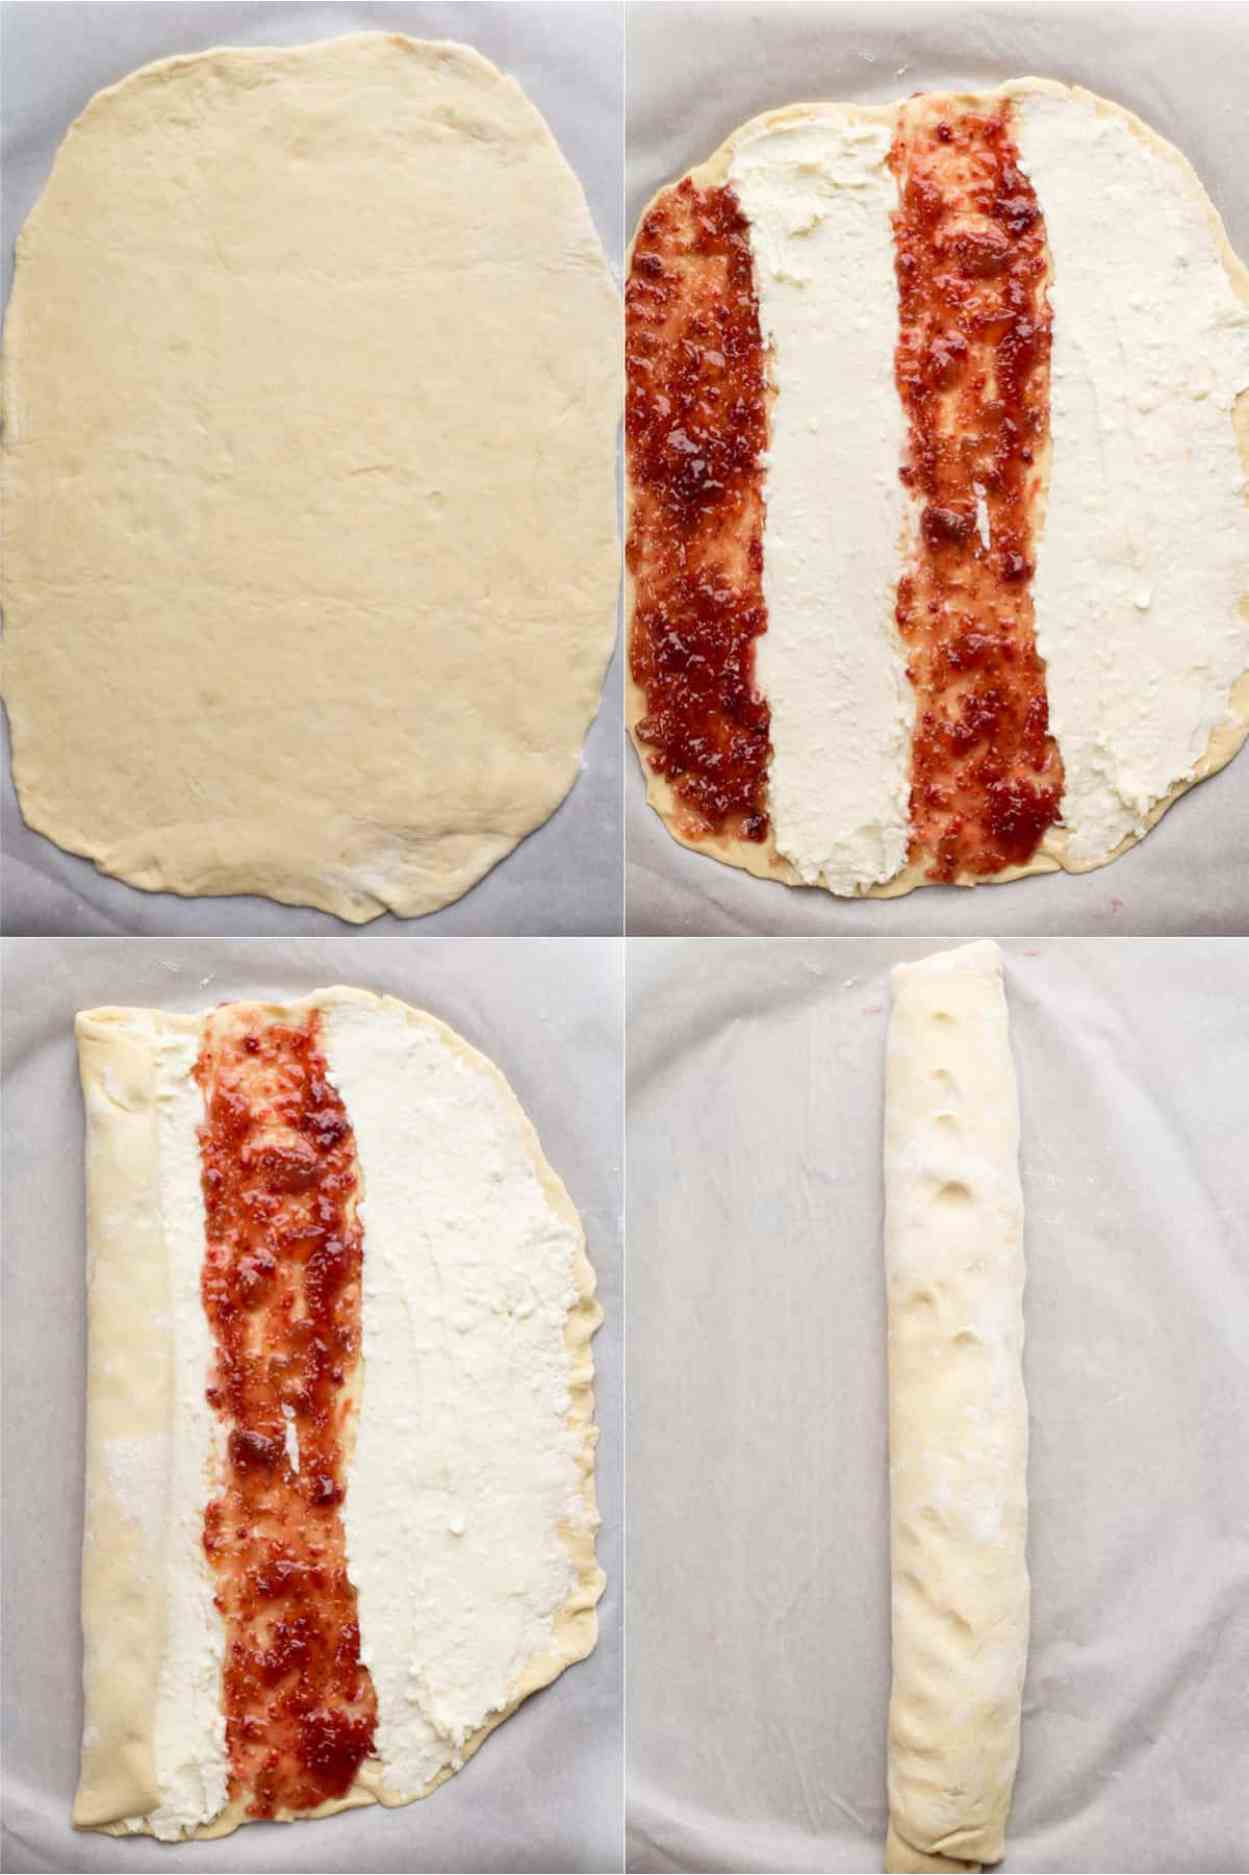 Step by step instructions. How to fill the sweet bread with cream cheese and jam.